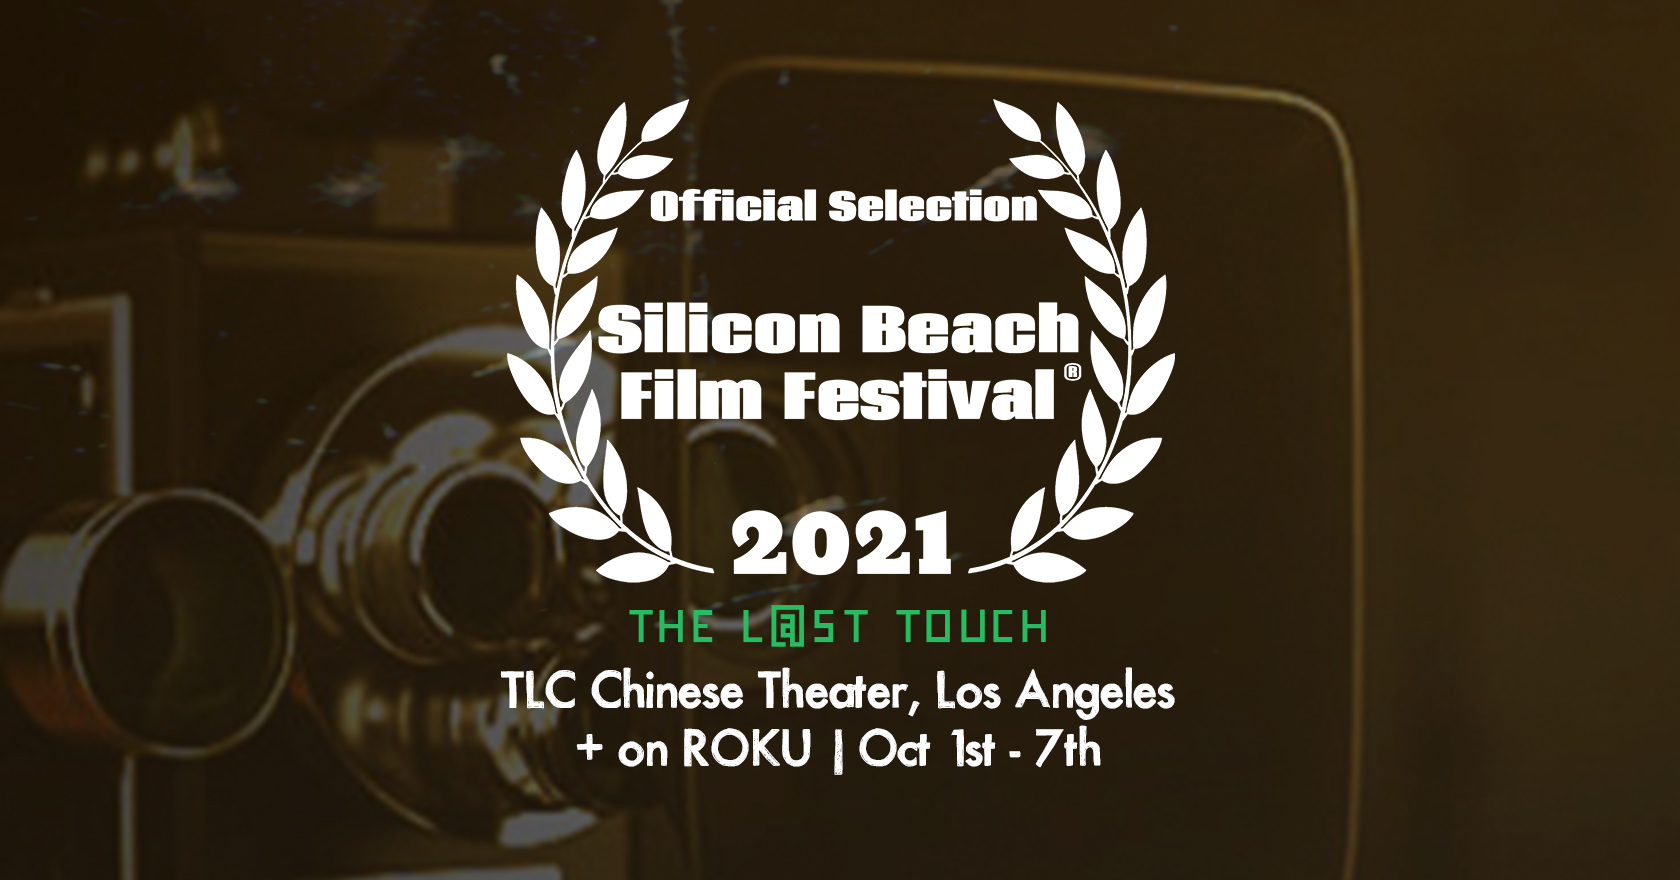 Silicon Beach Film Festival 2021 at TCL Chinese Theater | October 1st!